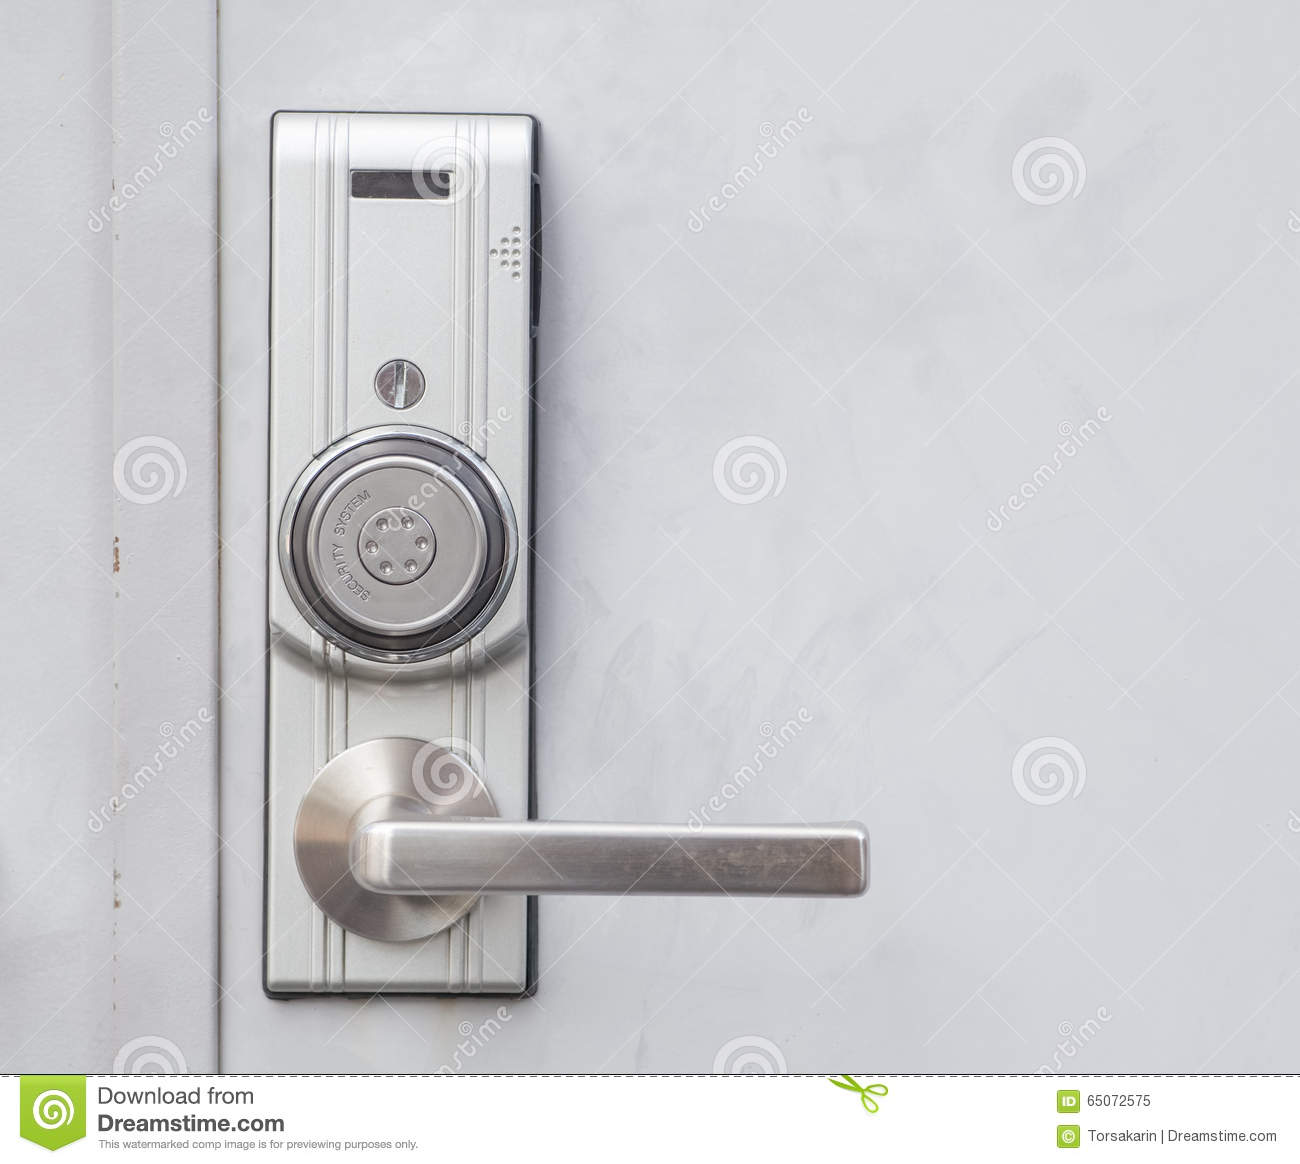 Door Handle With Security System Lock On Metal Door Stock Photo.